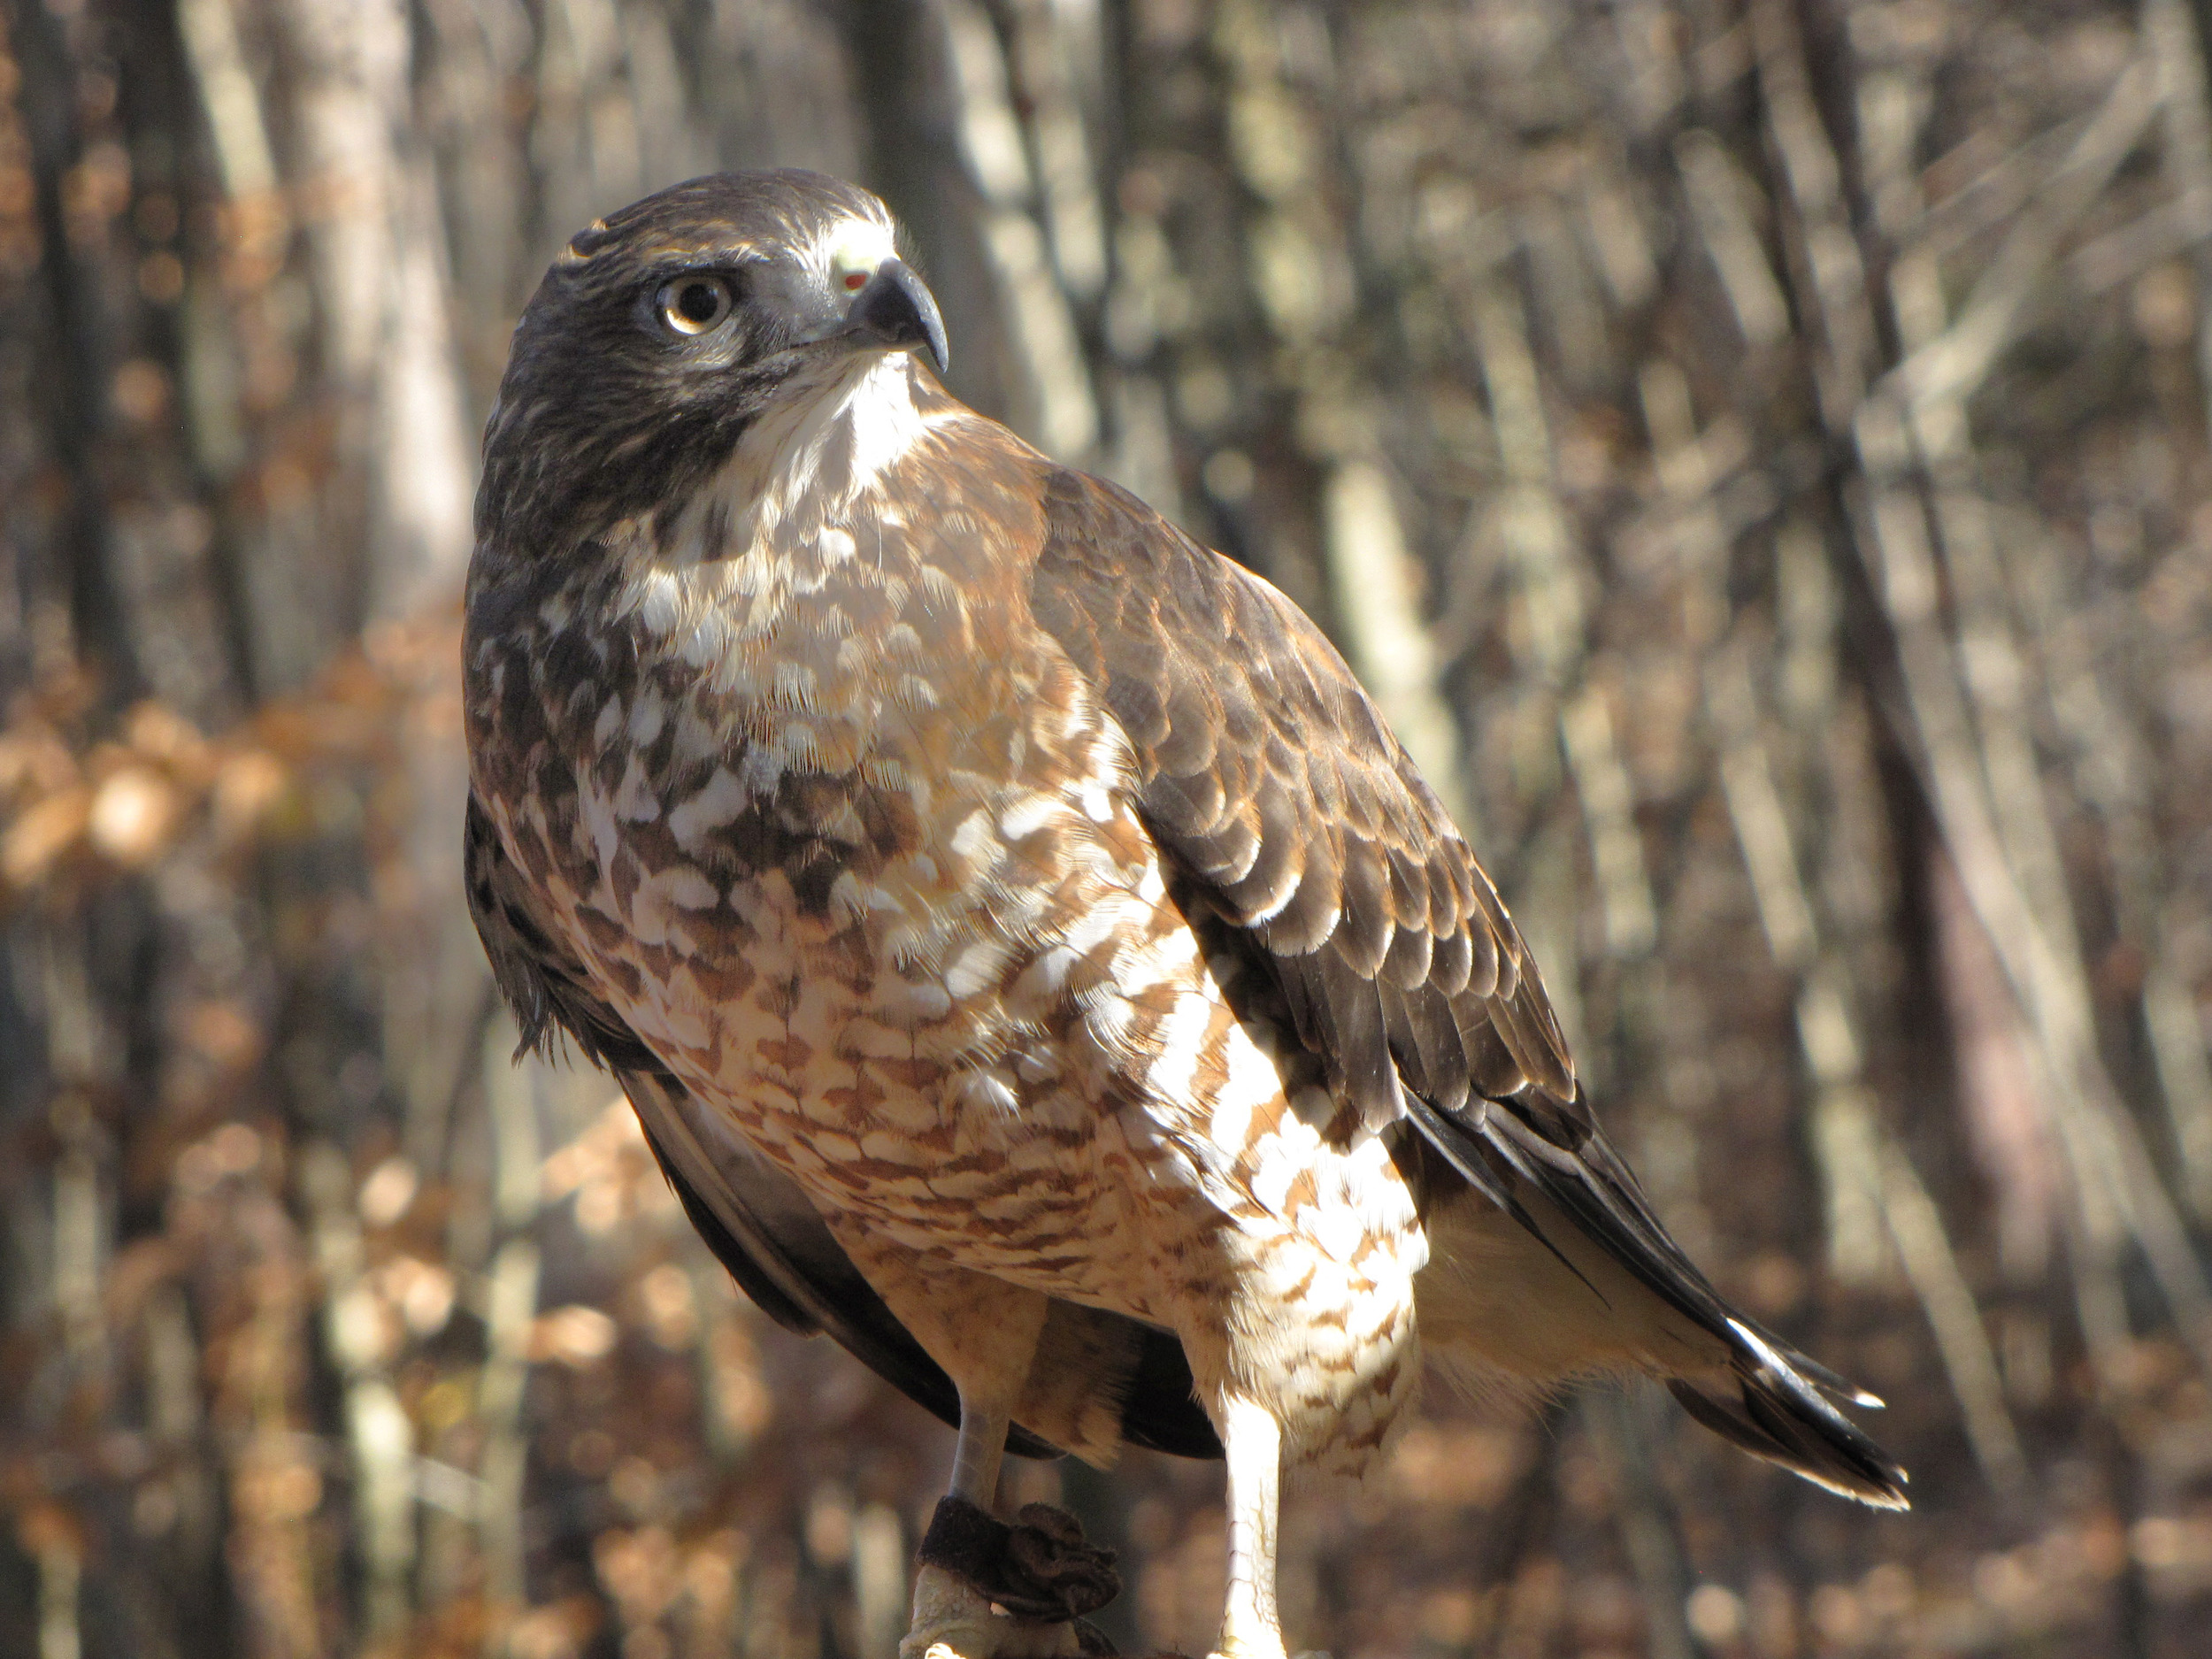 Grace - Broad-winged Hawk - Full View.jpg